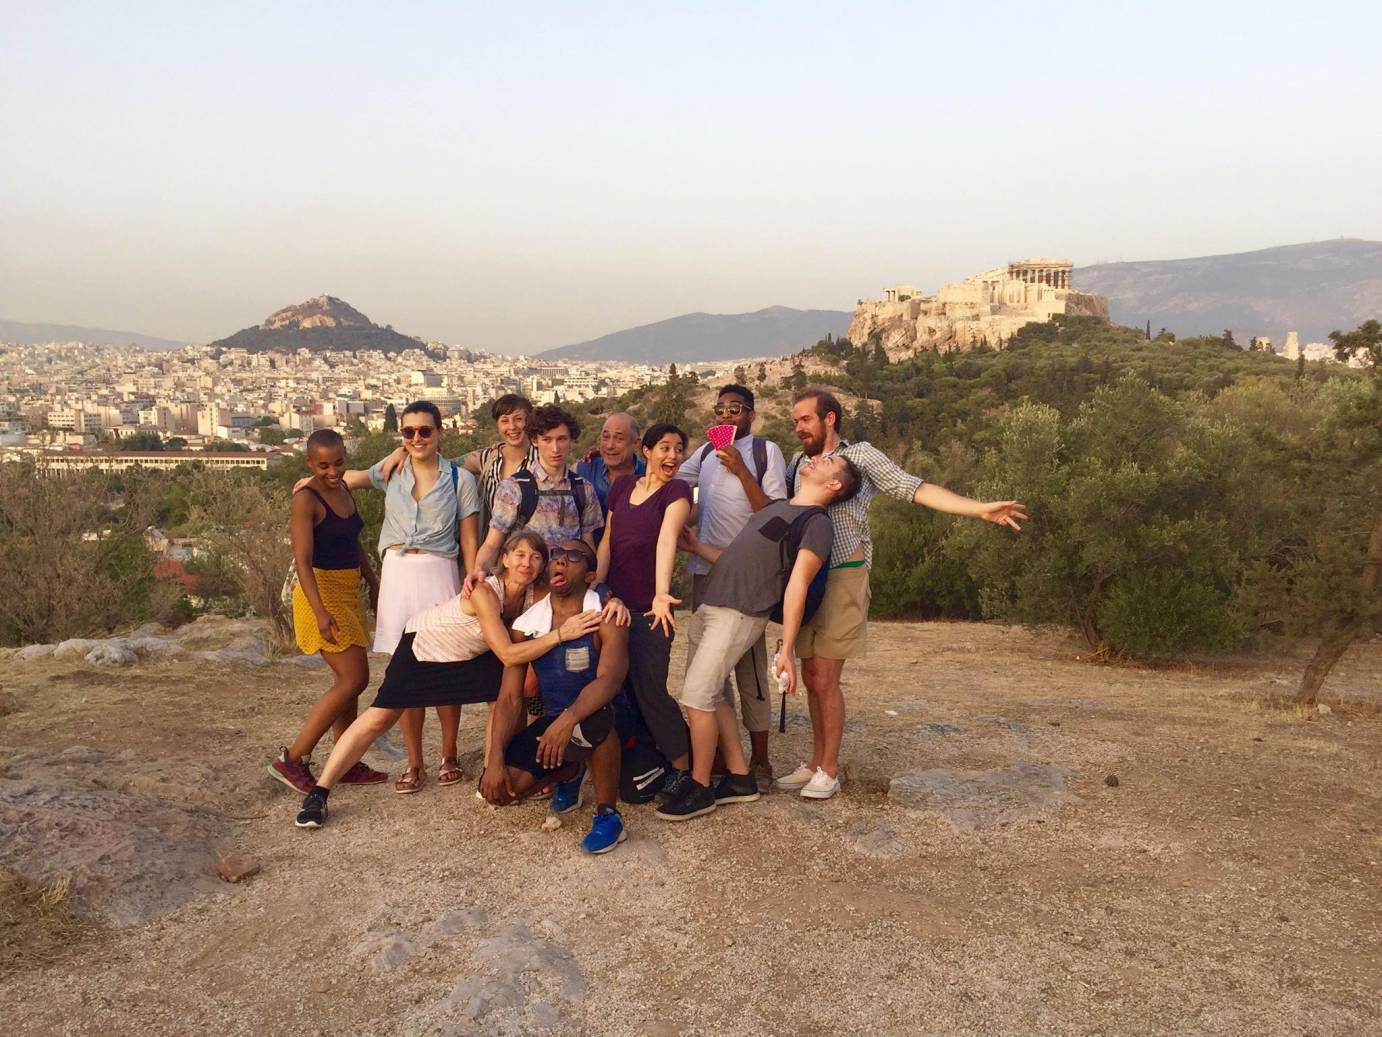 Company members strike silly faces for a photo overlooking the city of Athens